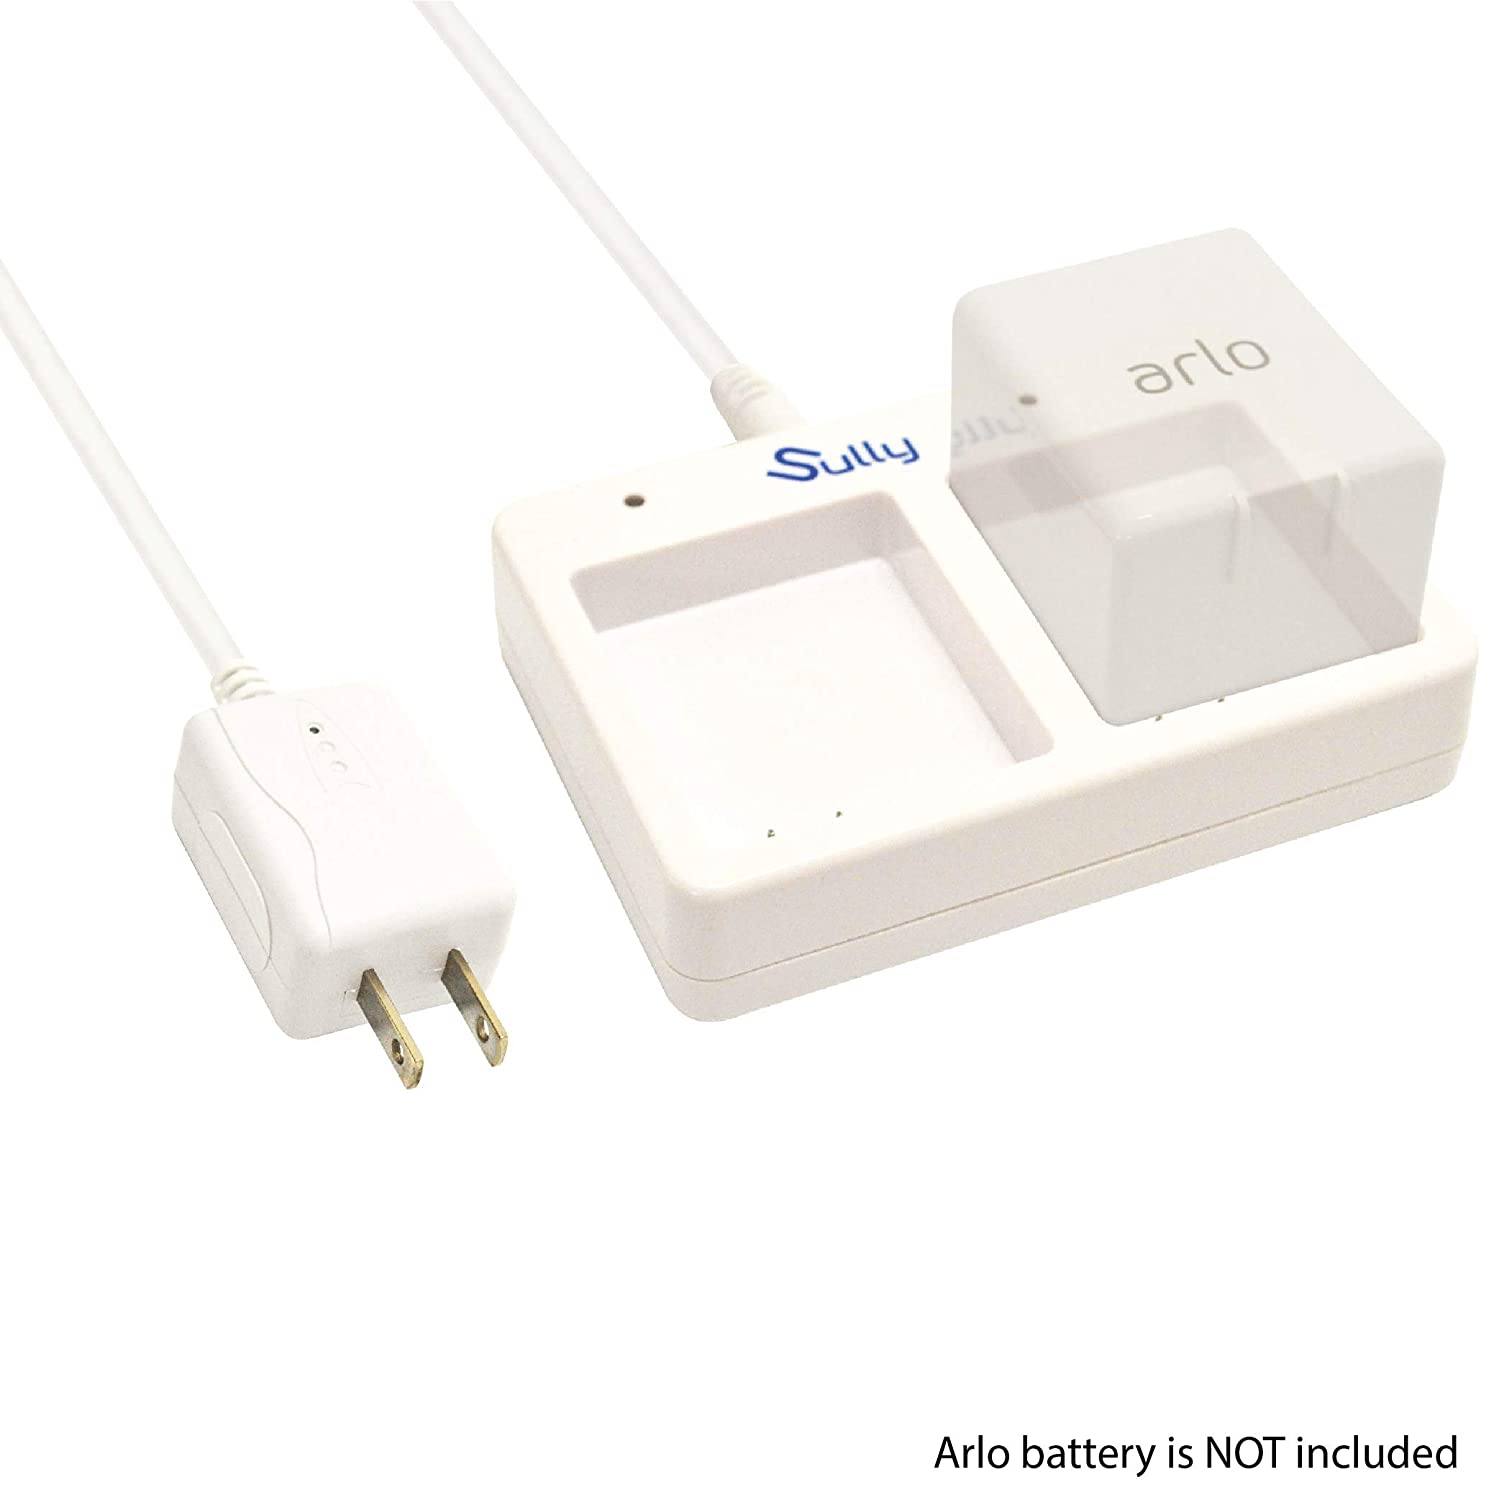 Charging Station for Arlo Security Light /& Arlo Pro Smart Home Cameras /& Arlo Pro 2 /& Arlo Go Batteries VMA4410 ALS1101 ALS1101 by Sully 2 Ports White Battery Charger for Arlo Netgear Batteries